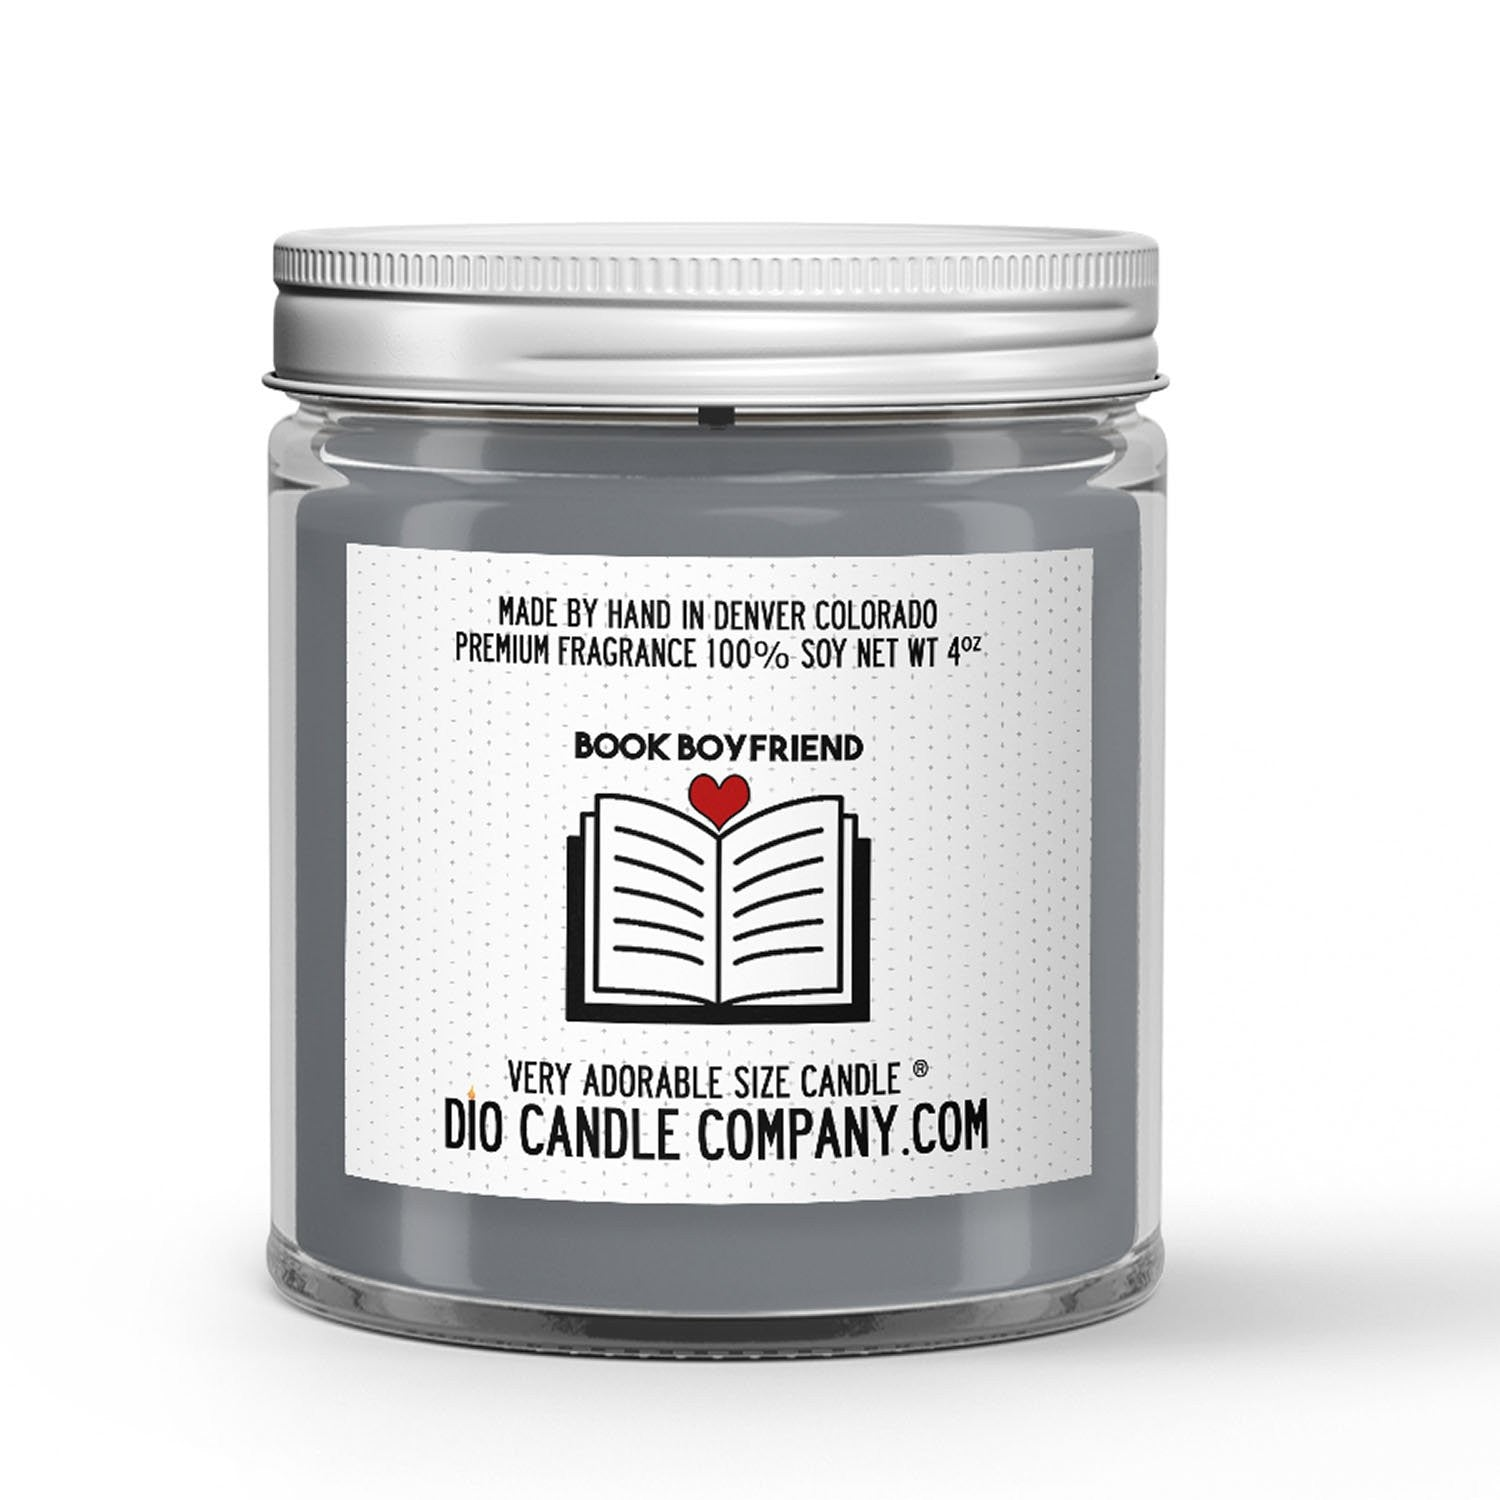 Book Boyfriend Candle - Smoked Caramel - 4oz Very Adorable Size Candle® - Dio Candle Company